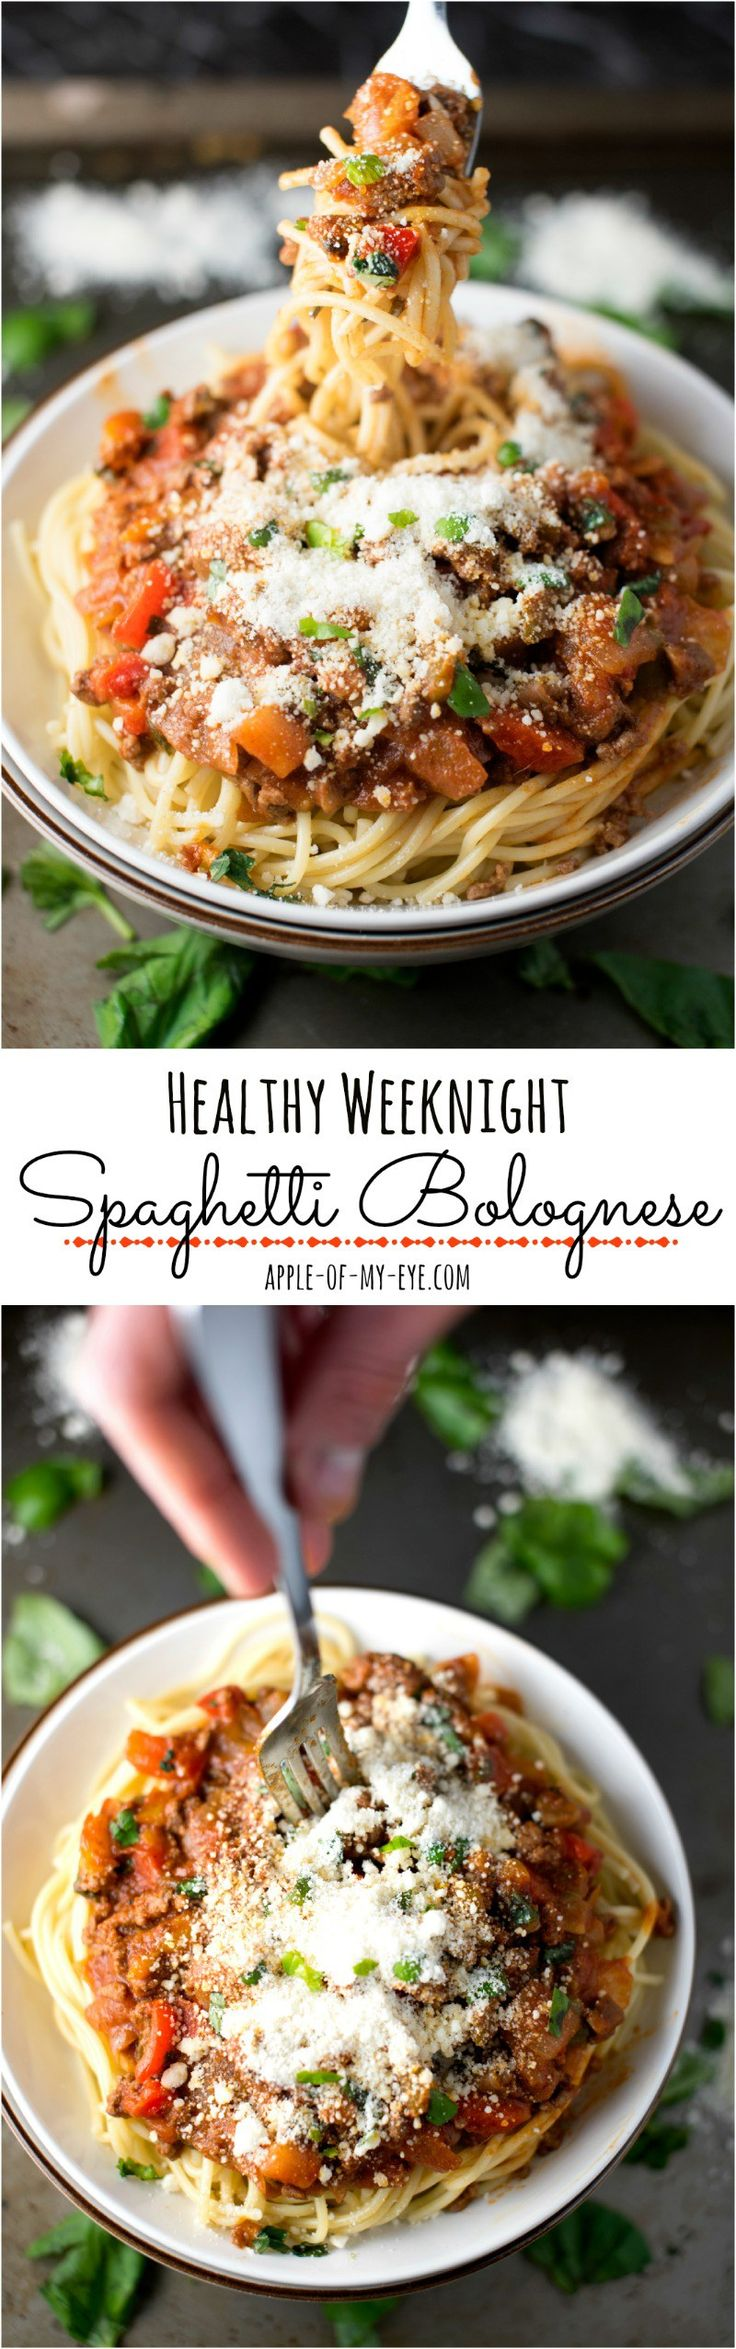 Healthy Weeknight Spaghetti Bolognese- this is done in just 30 minutes and is low-calorie comfort food!